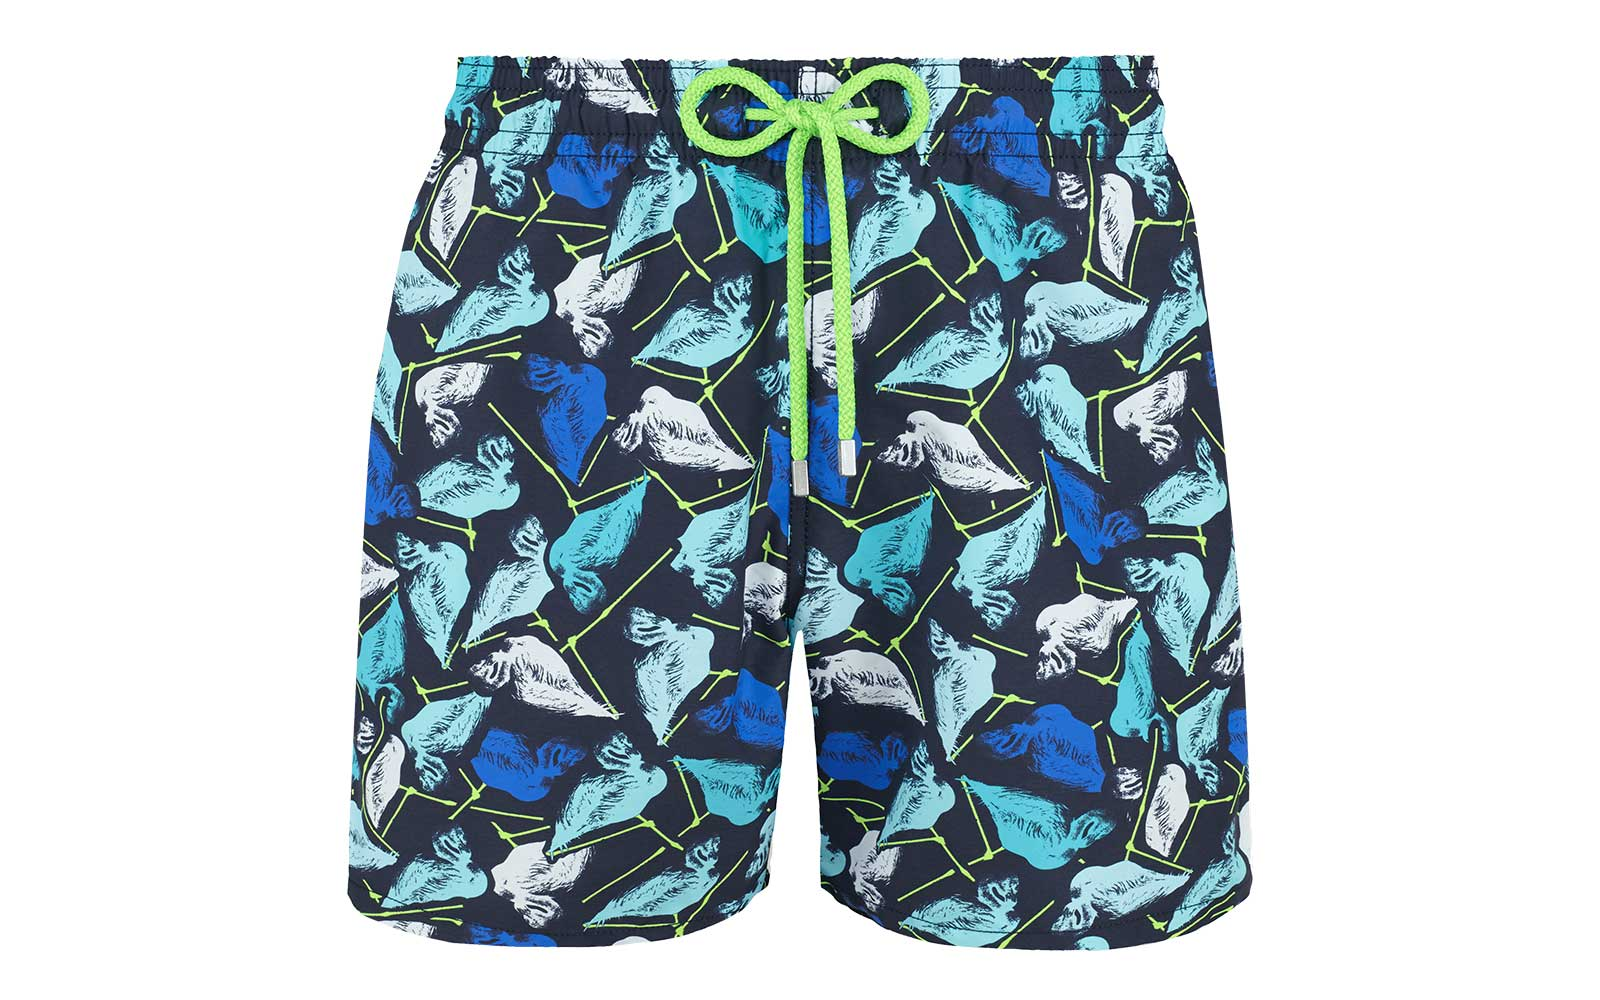 Vilebrequin swim trunks designed for Baha Mar resort